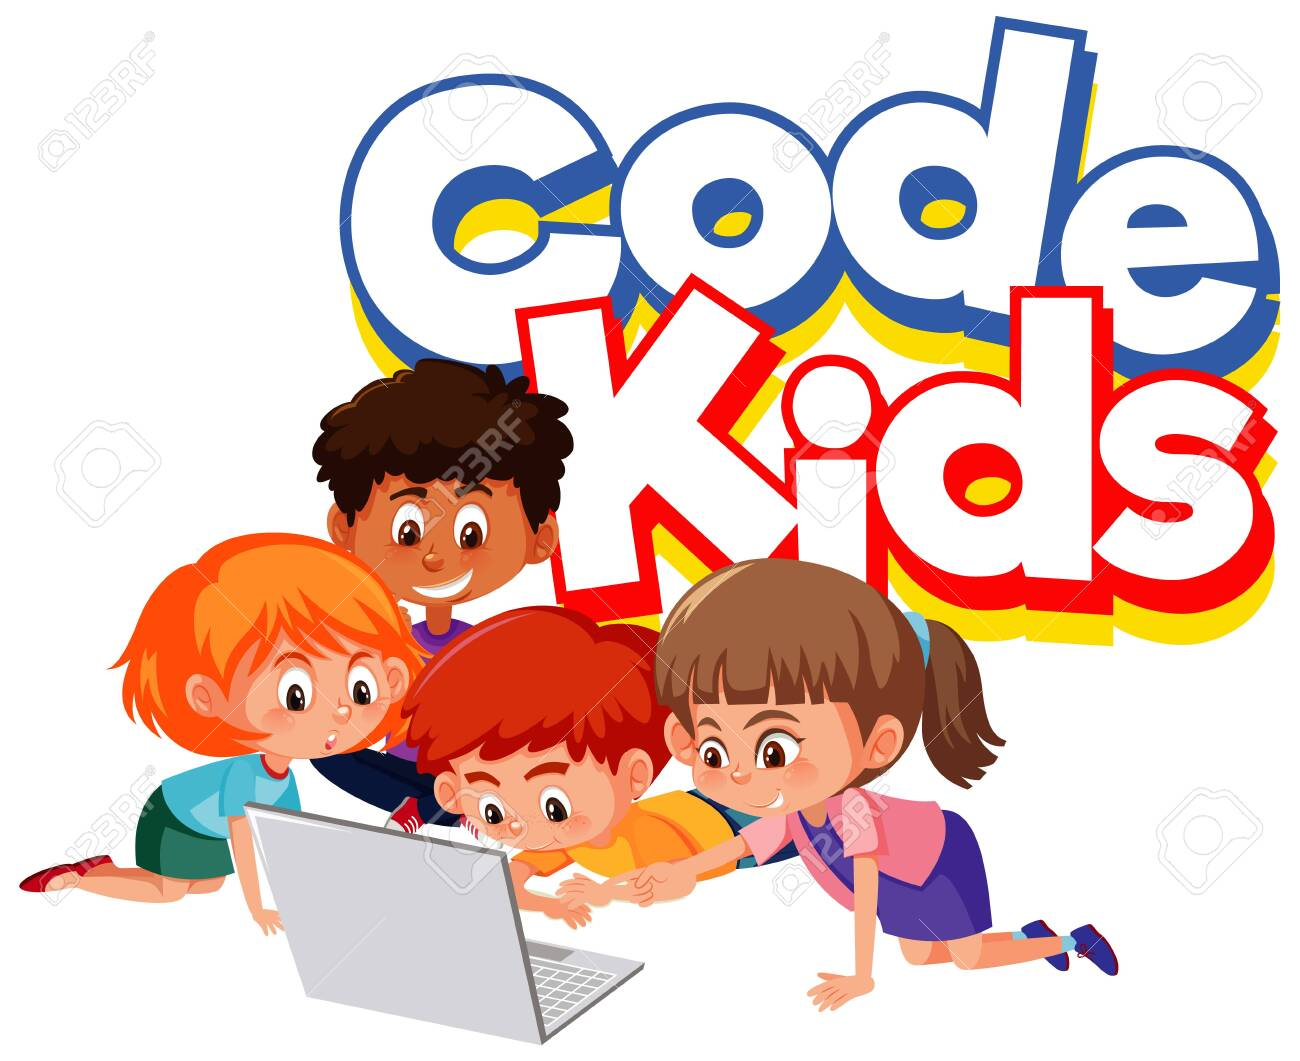 Font design for word code kids with children working on computer illustration - 143022439